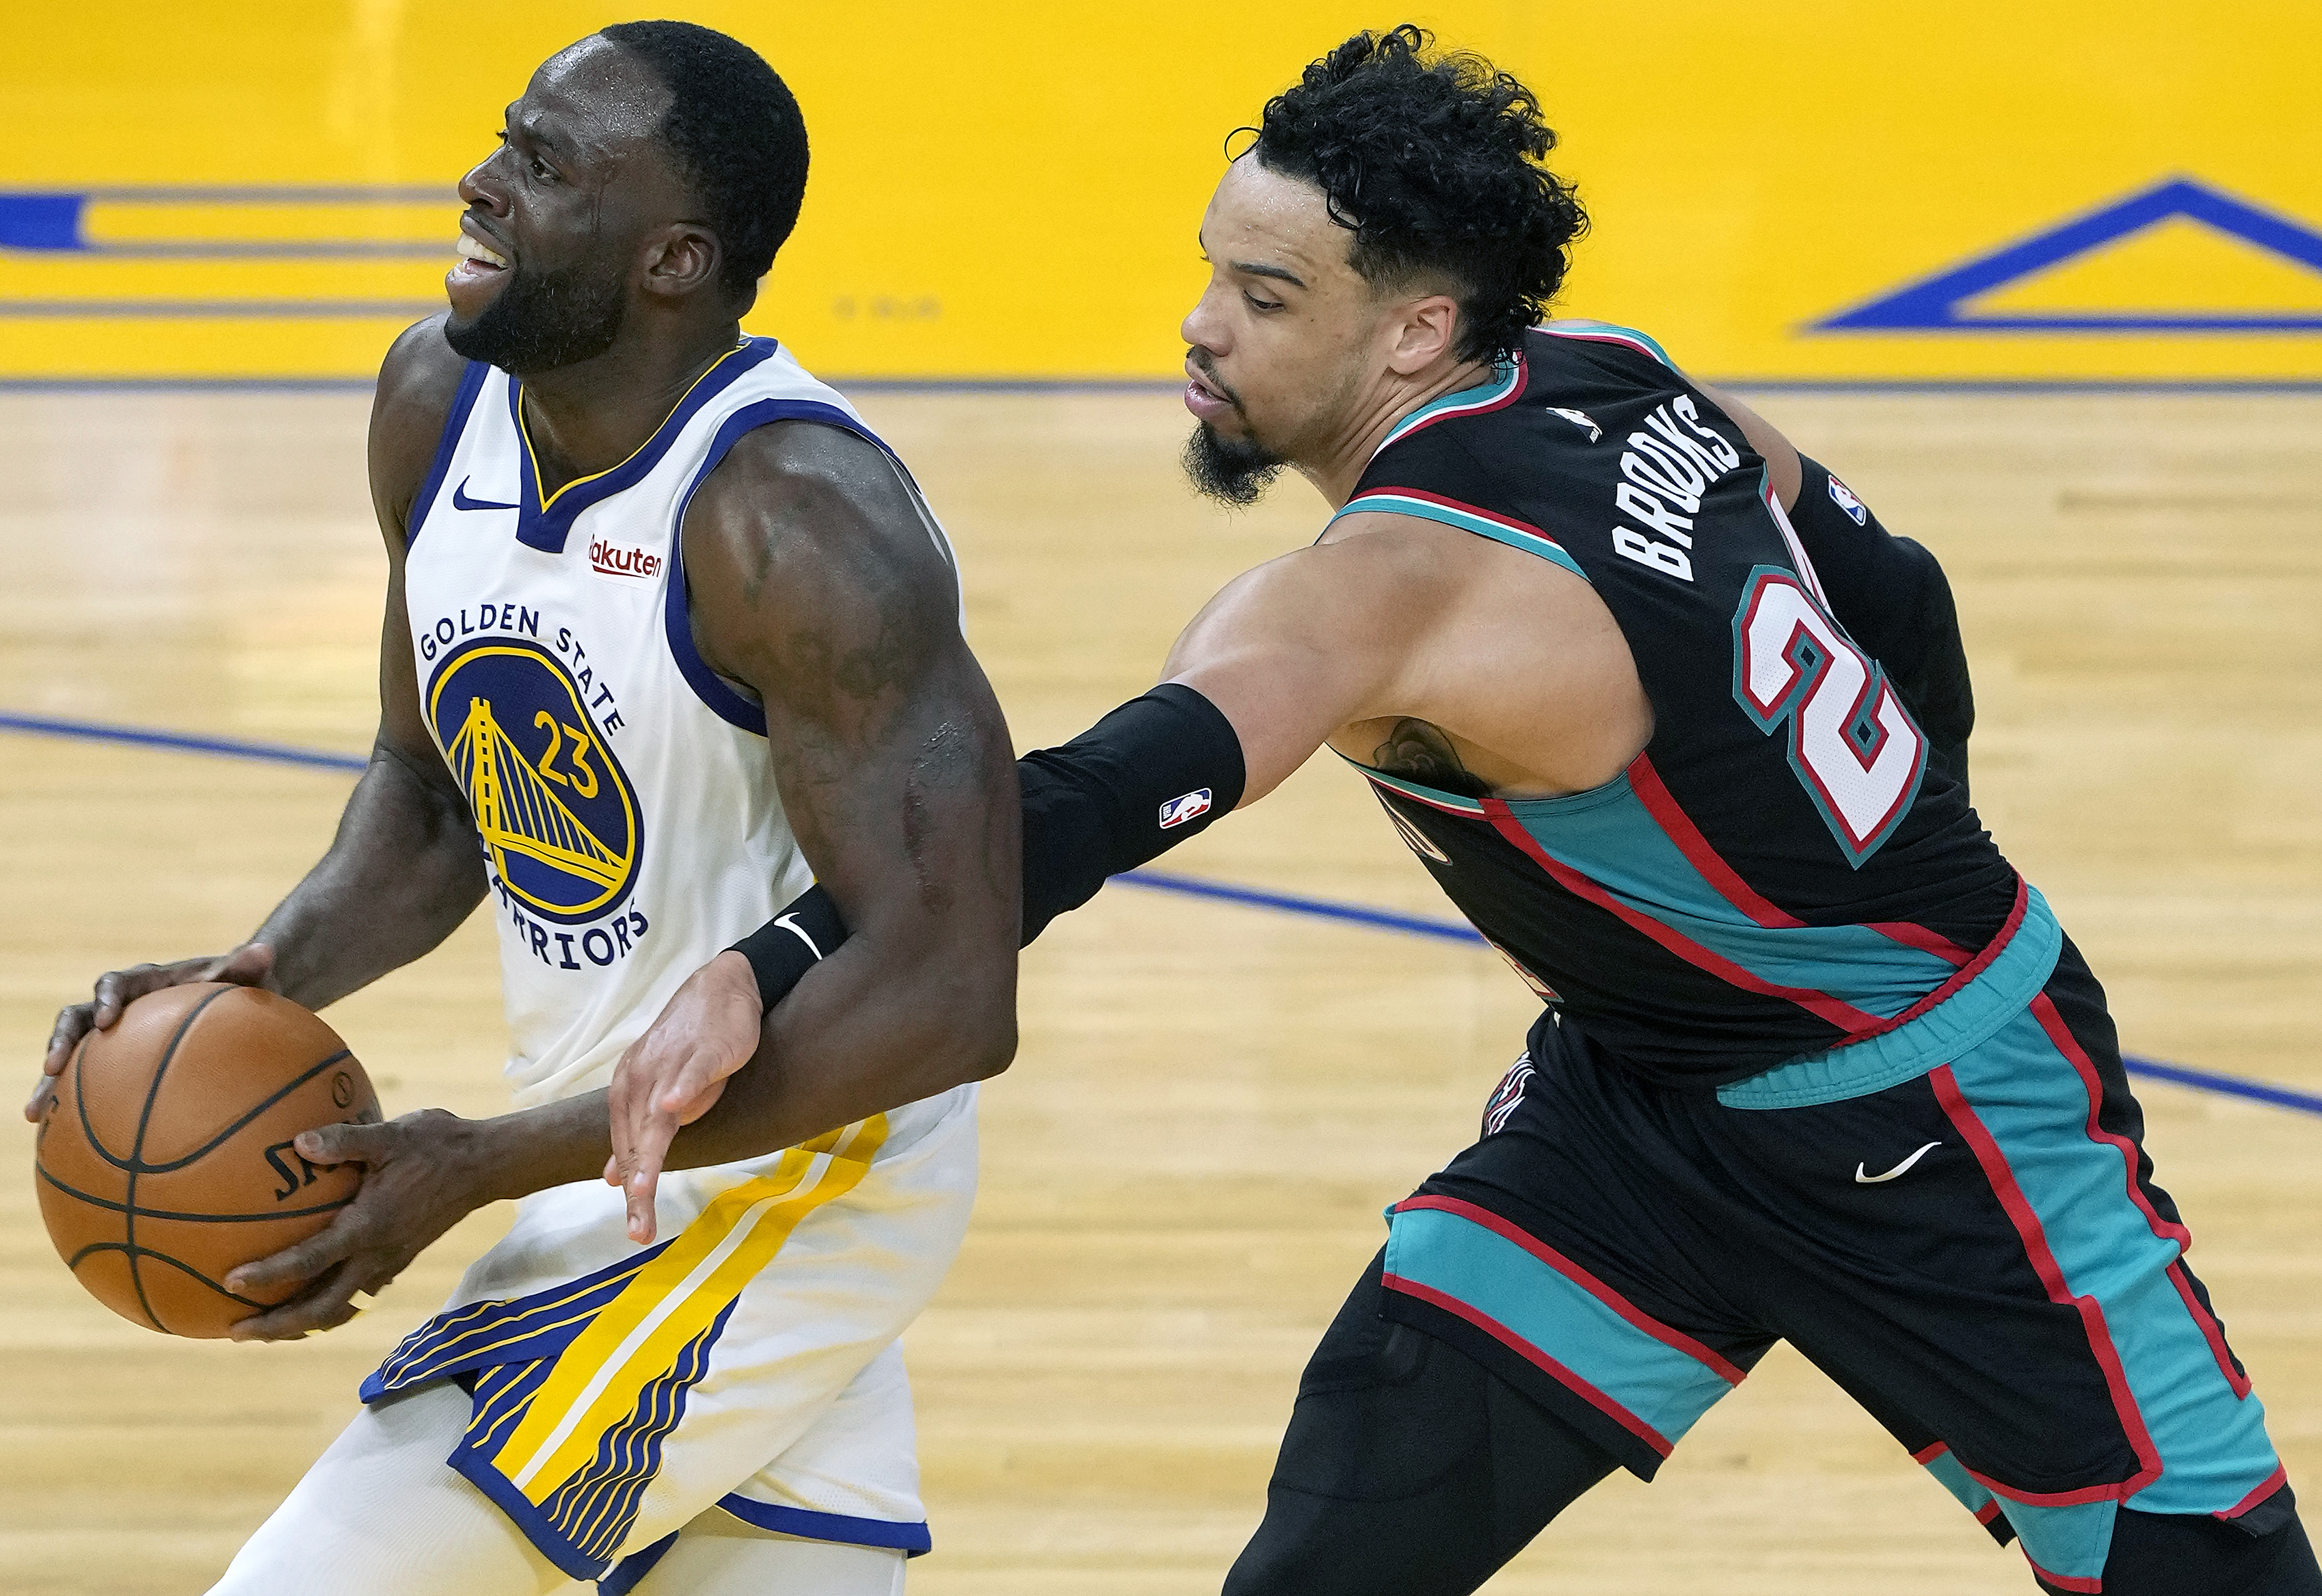 Draymond Green of the Golden State Warriors driving to the basket gets fouled by Dillon Brooks of the Memphis Grizzlies during the second half of an NBA basketball game at Chase Center on May 16, 2021 in San Francisco, California.